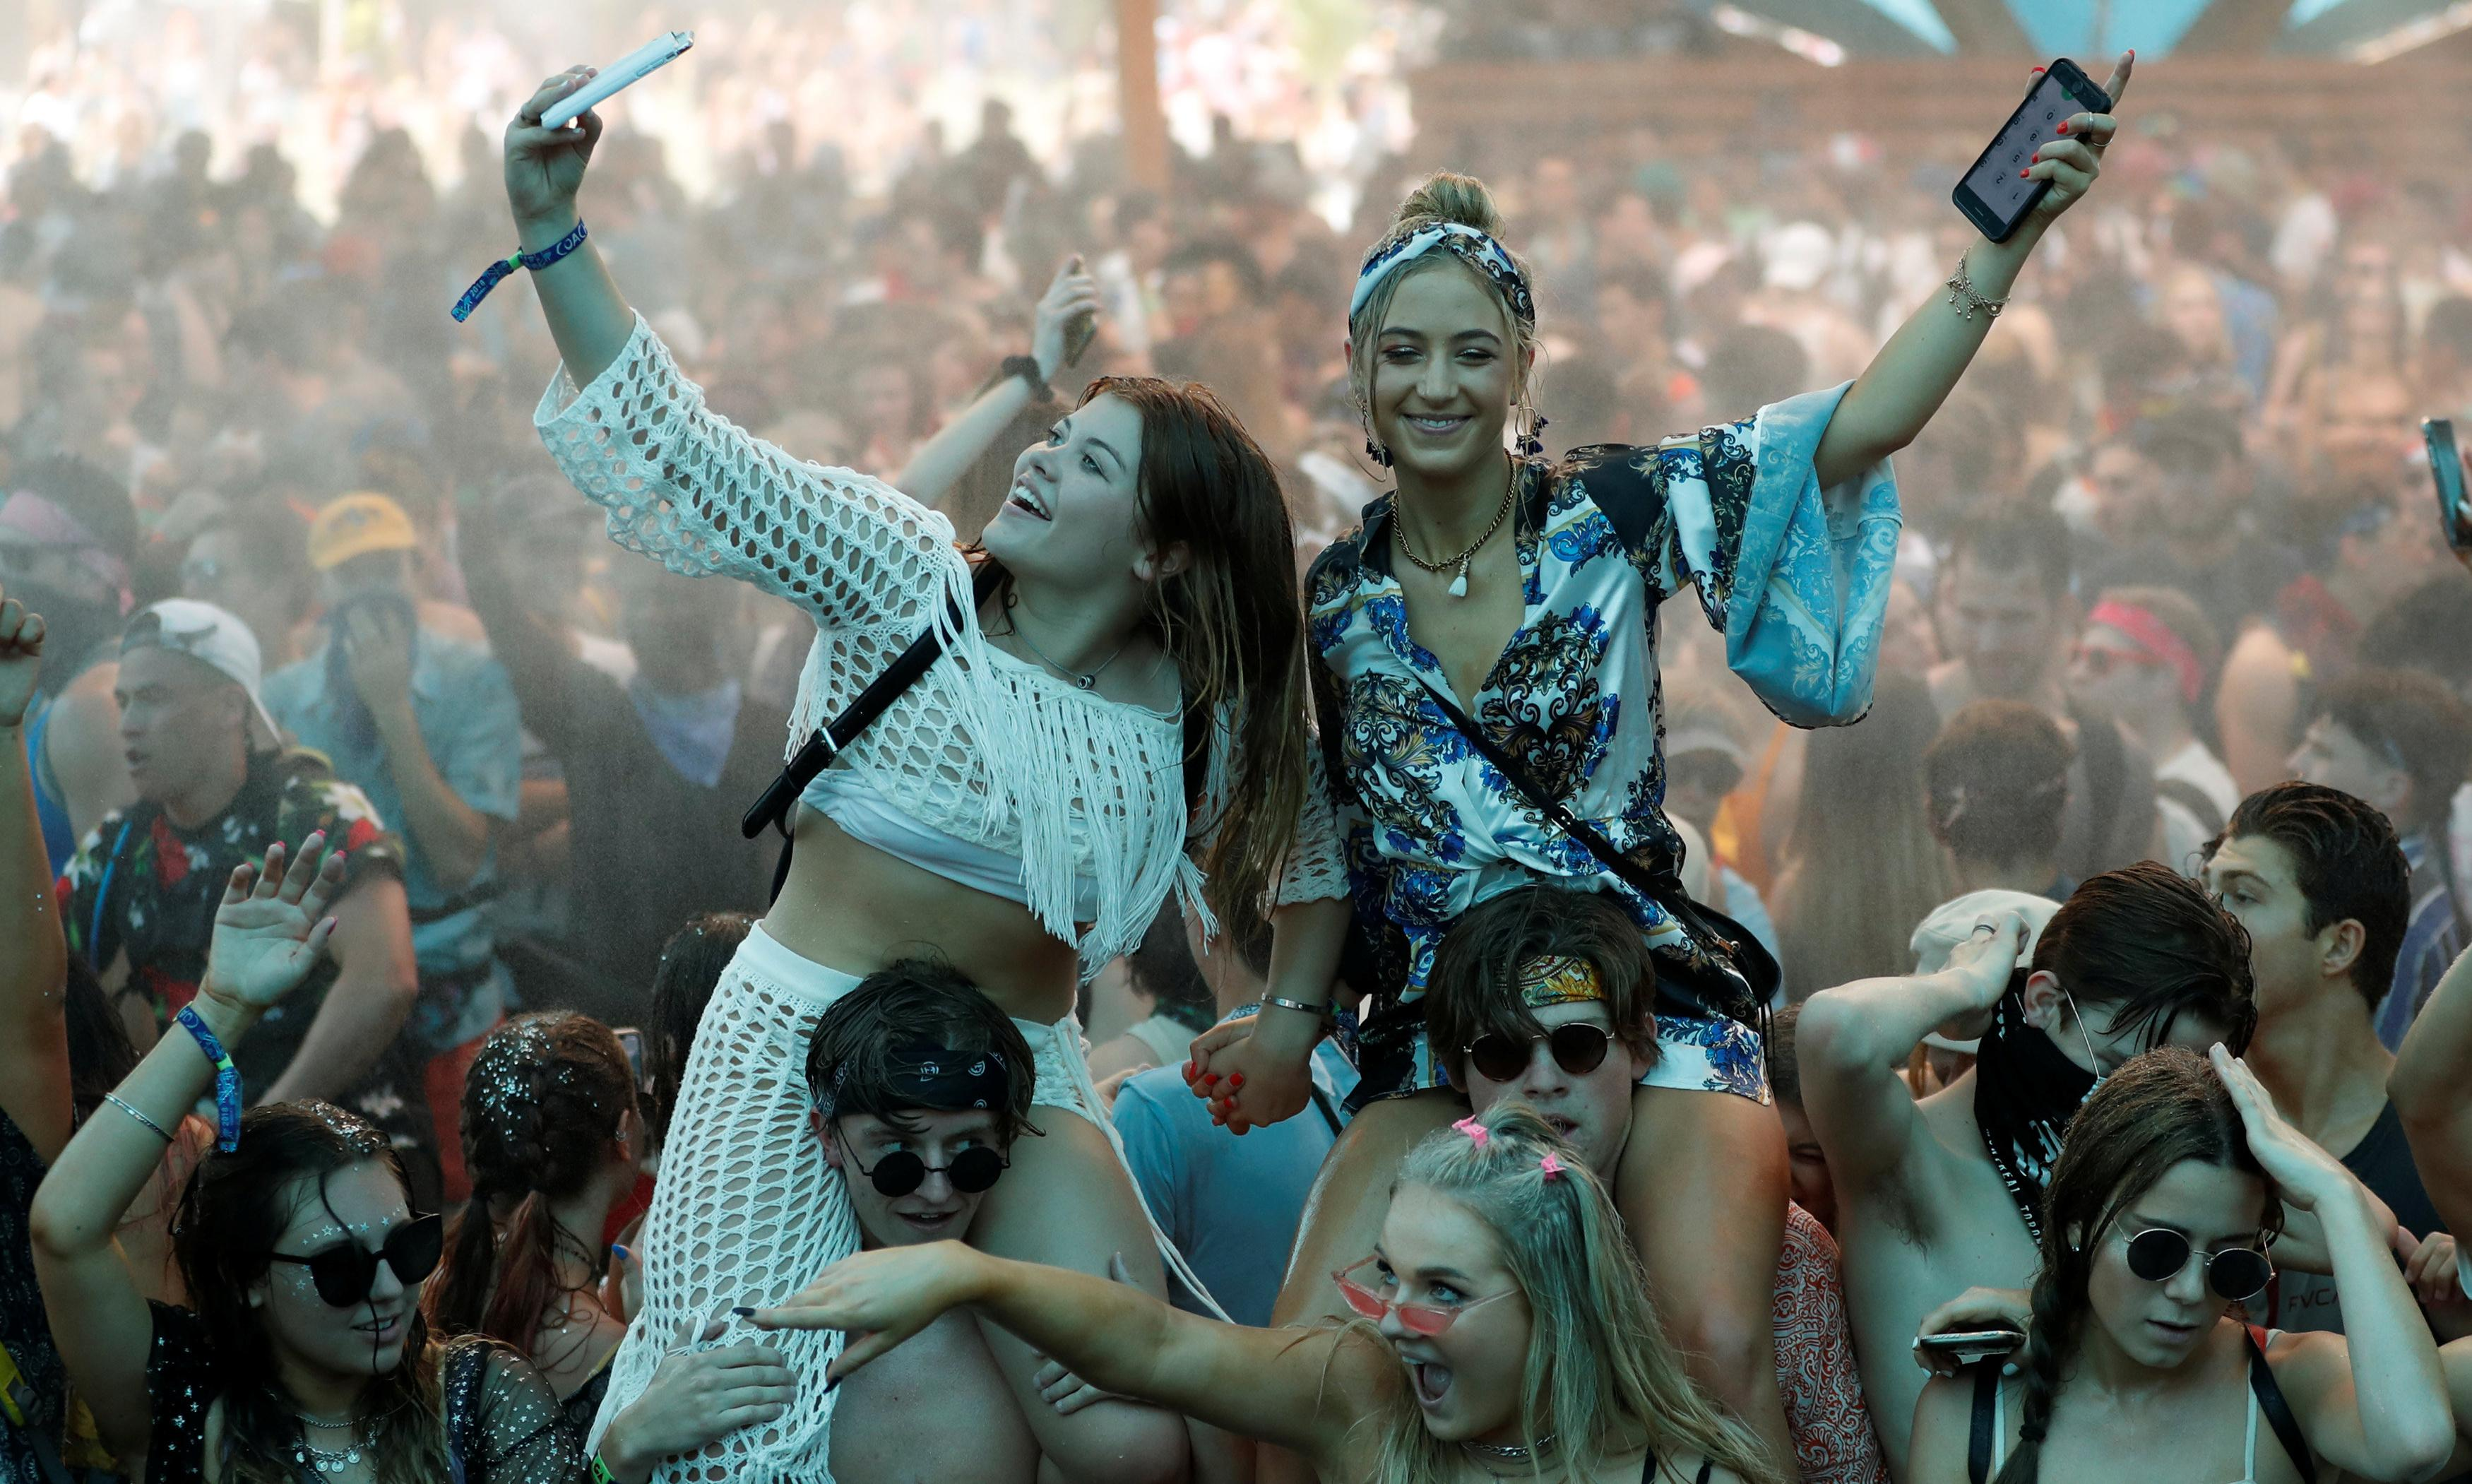 Amazon's music festival prizes commerce over culture – it must be resisted